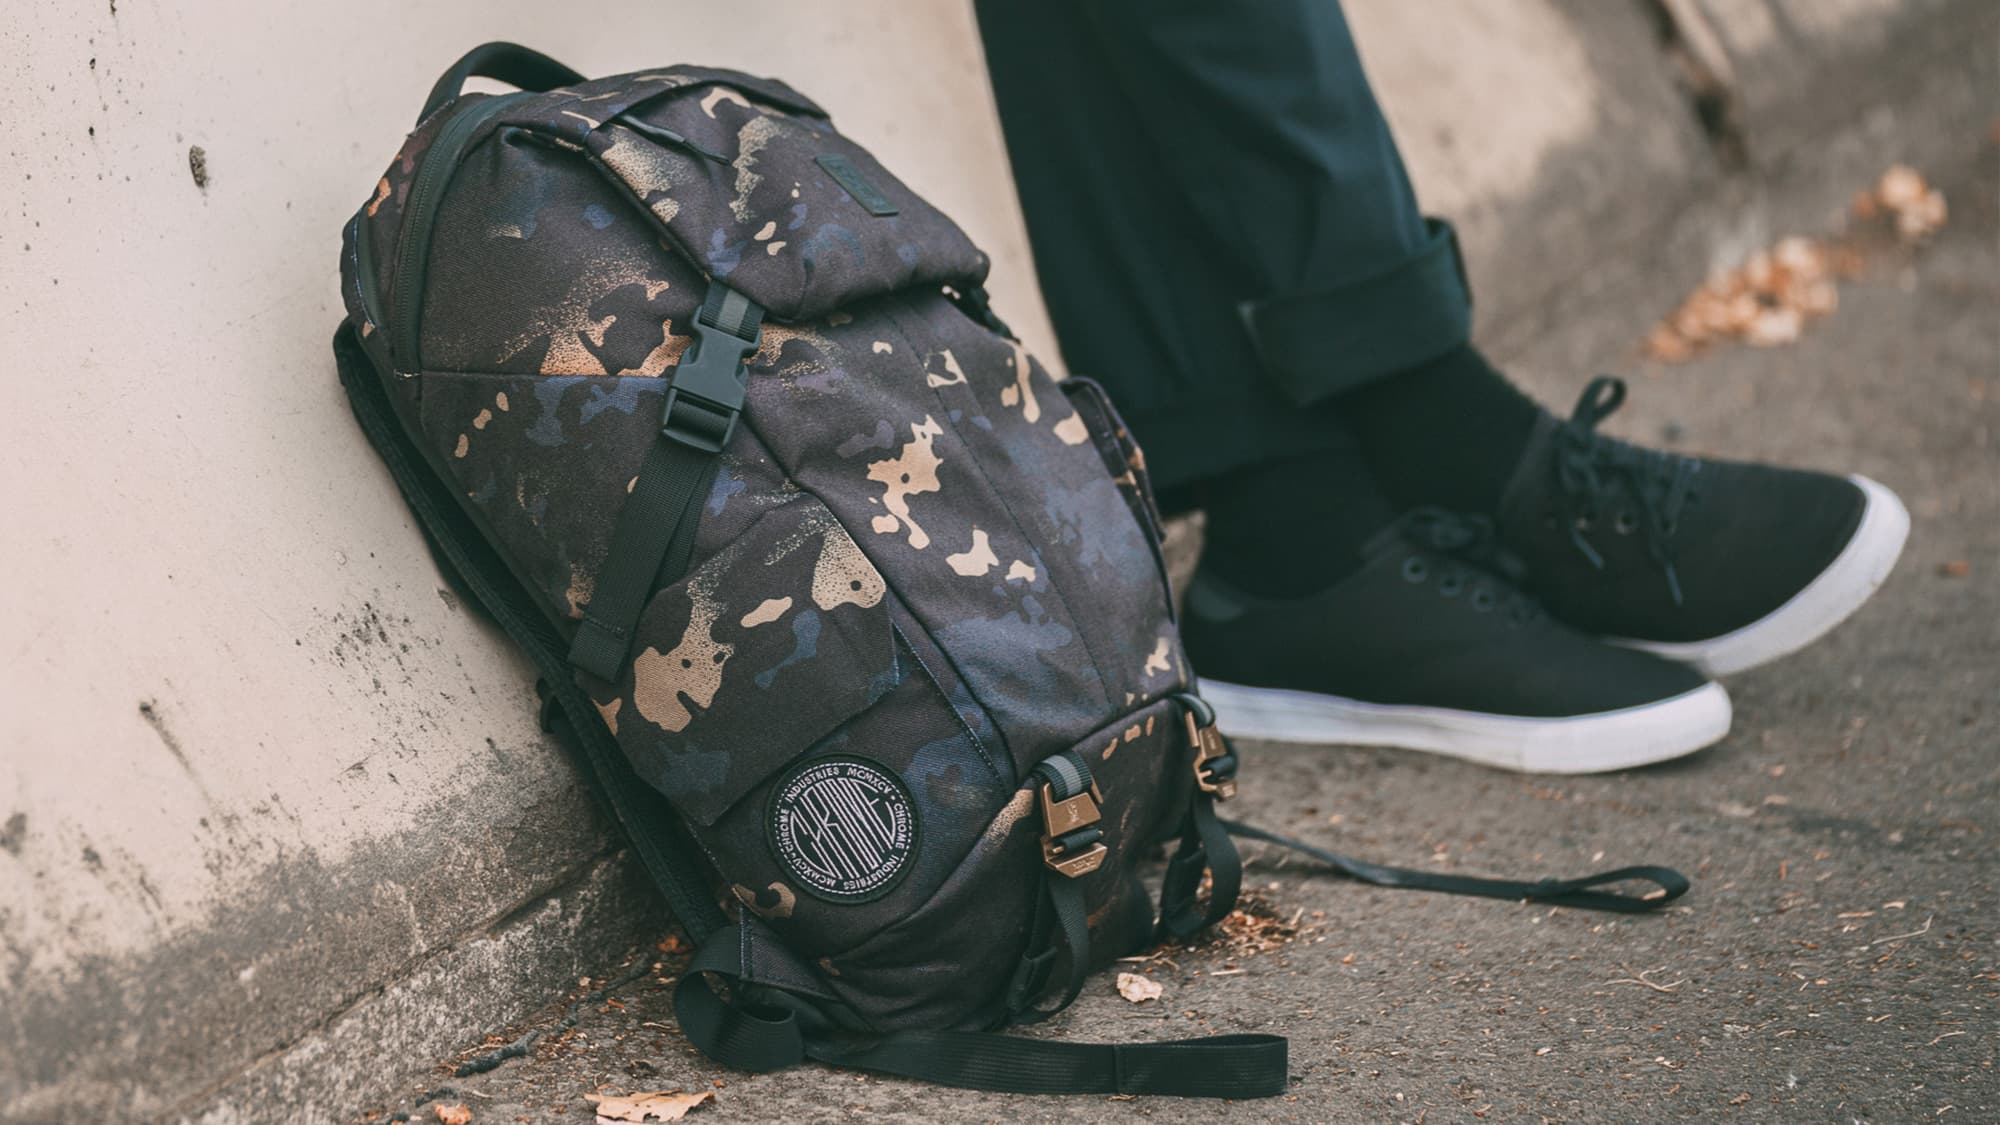 Pike Backpack in the city